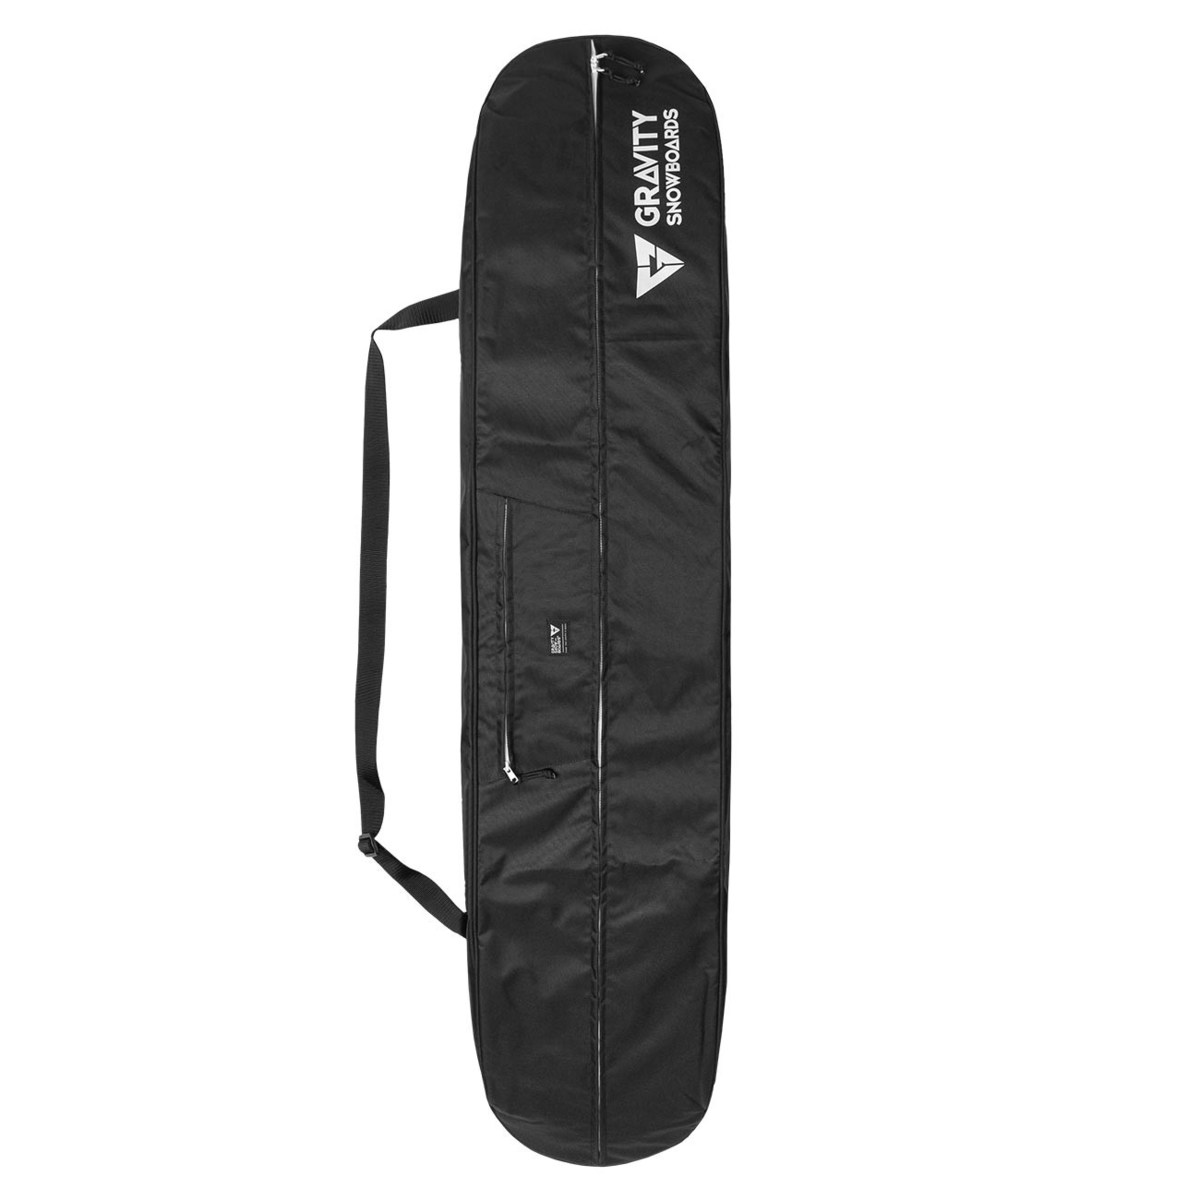 Obal na snowboard Gravity Icon JR 18/19 140 cm